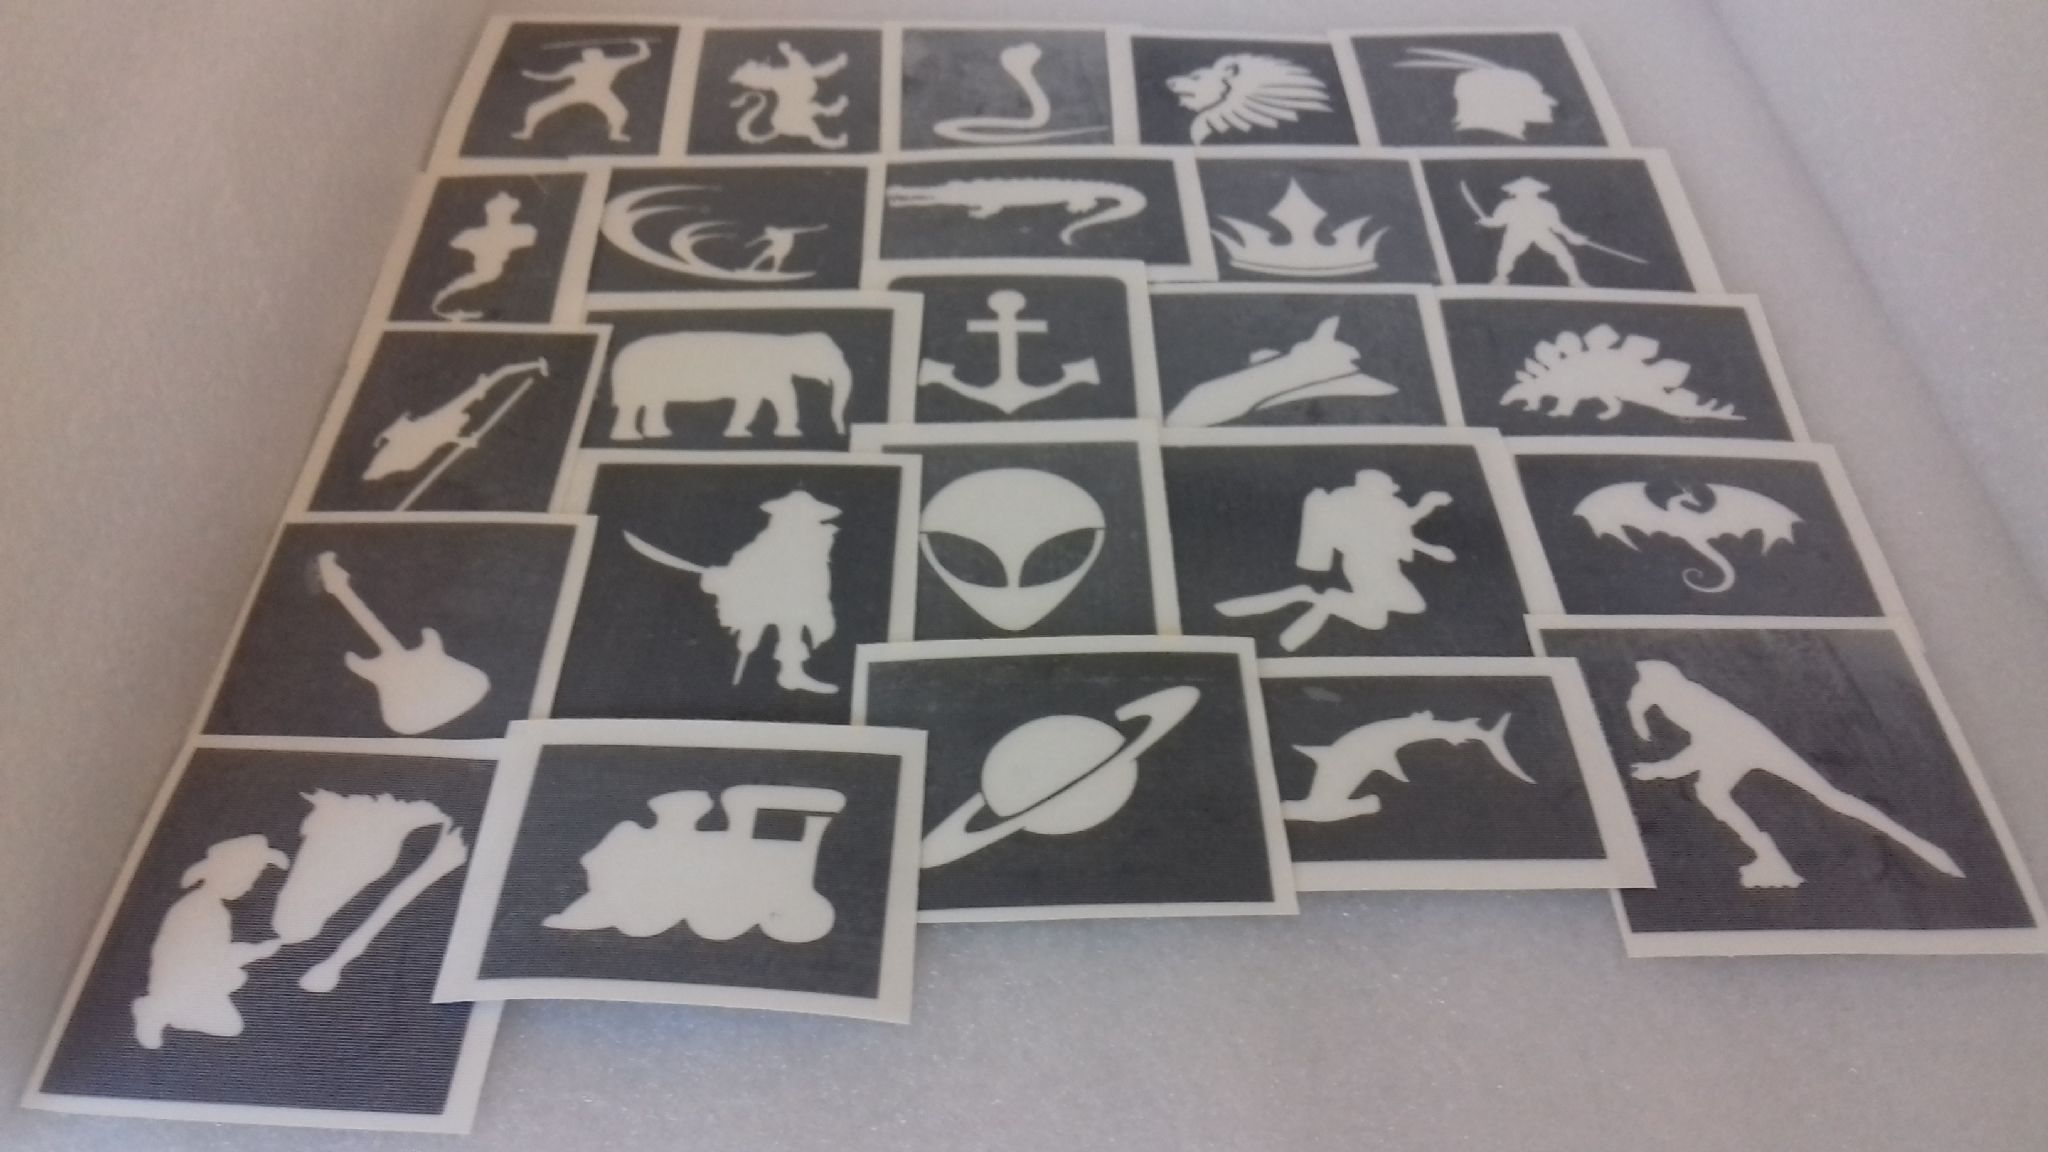 10 100 x boys themed stencils for glitter tattoos airbrush henna face painting fundraising